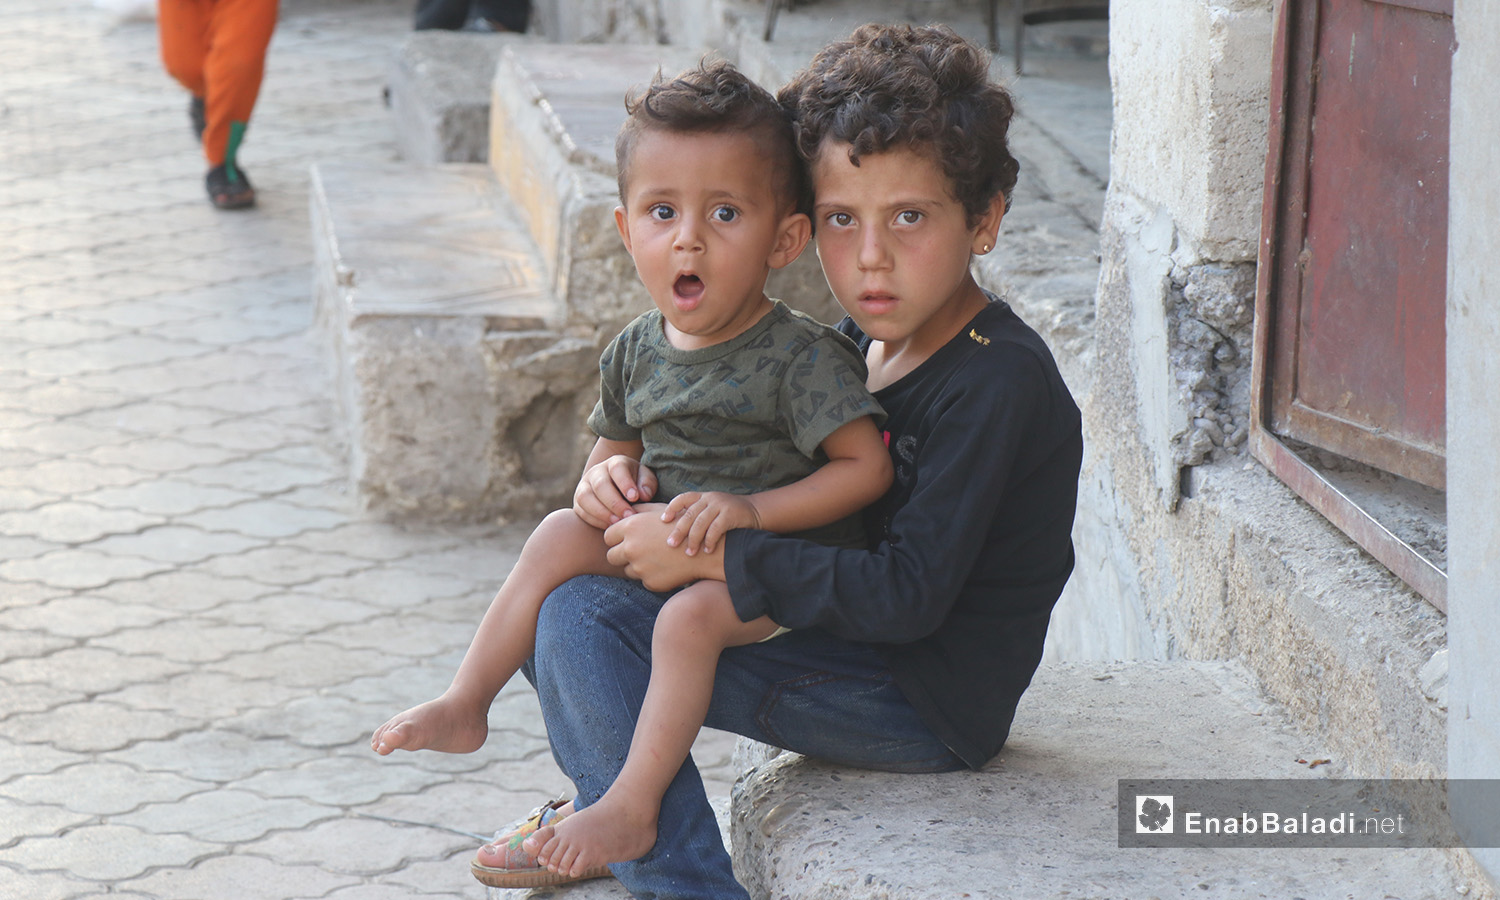 A child holding her little brother in front of their house in al-Raqqa city  - 26 July 2020 (Enab Baladi / Abdul Aziz Saleh)